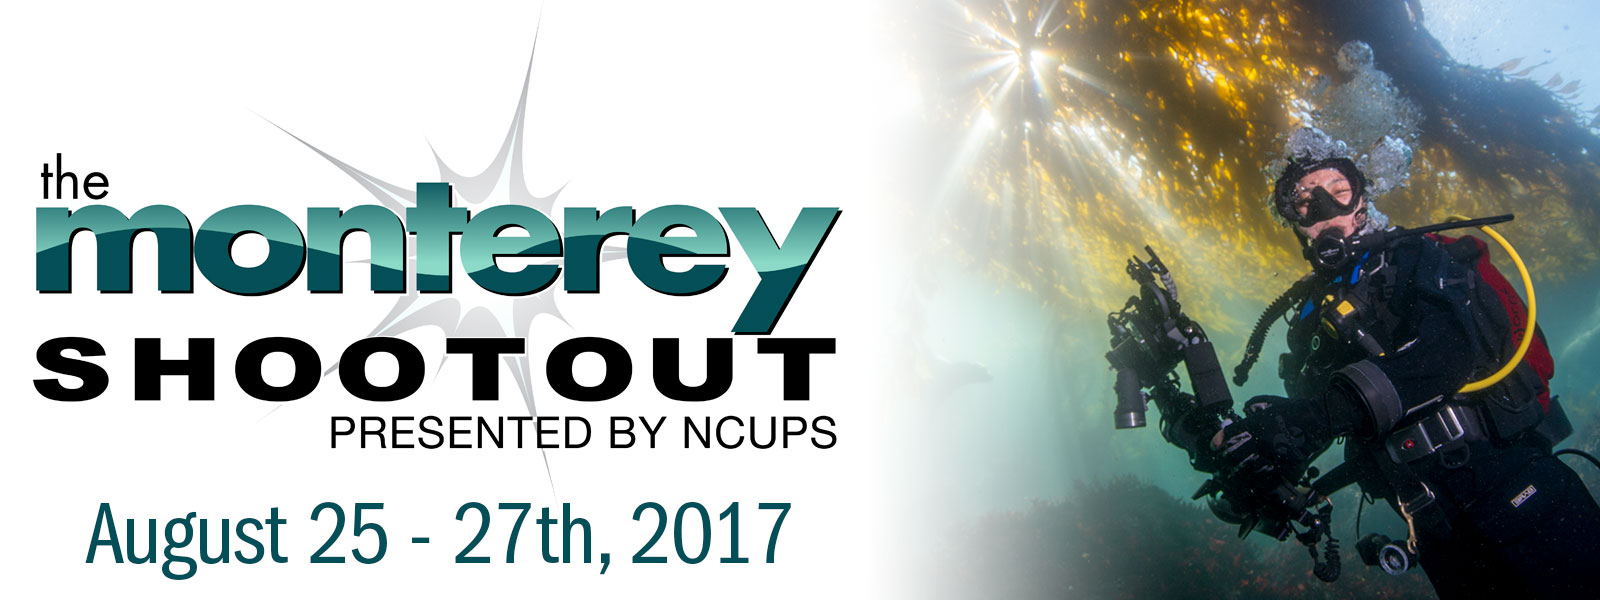 Join Us at the 2017 Monterey Shootout in Monterey, CA! - Aug. 25 - 27th, 2017